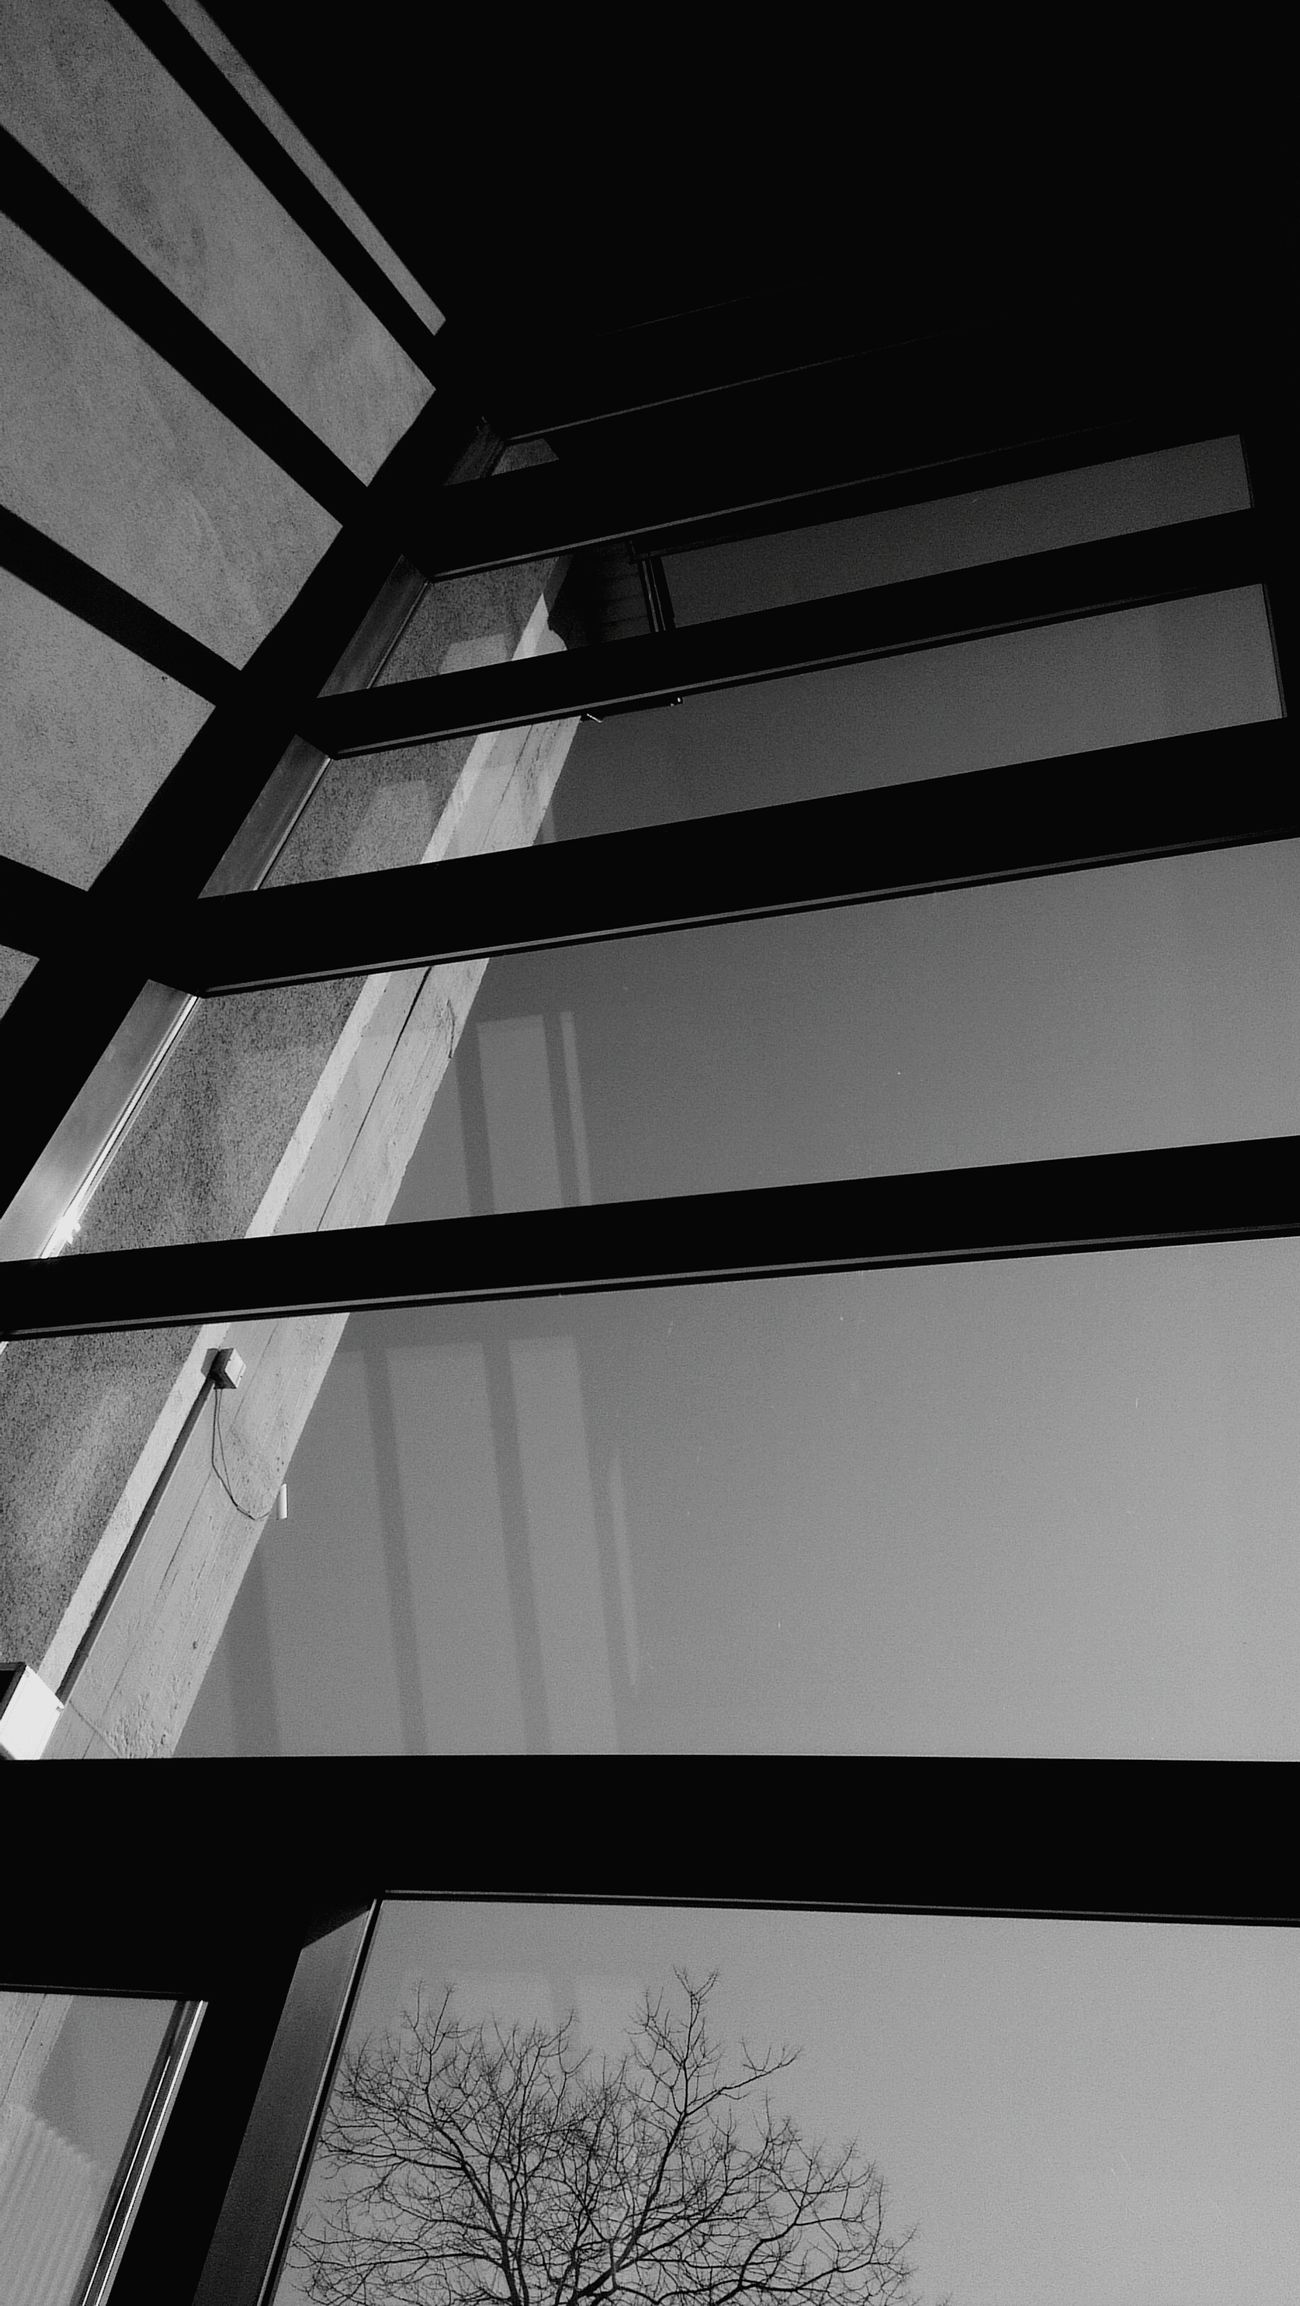 Window Reflections EyeEm Best Shots Simplicity Smart Simplicity EyeEm Best Shots - Black + White Simple Photography Simple.